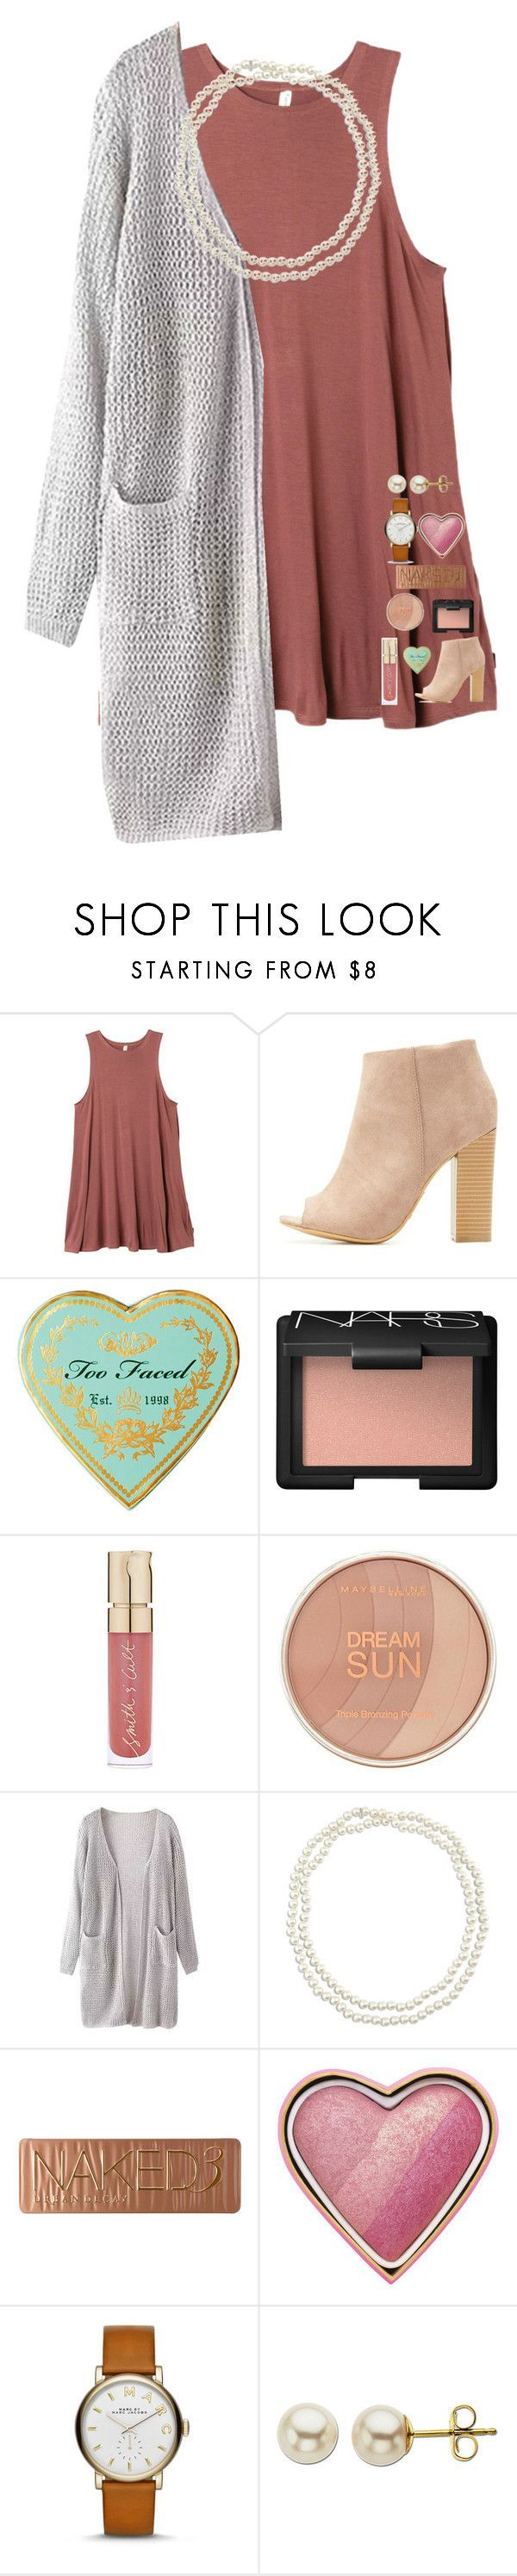 """Idk"" by cheerlover123 on Polyvore featuring RVCA, Bamboo, NARS Cosmetics, Smith & Cult, Maybelline, Chico's, Urban Decay, Too Faced Cosmetics, Marc Jacobs and Lord & Taylor"